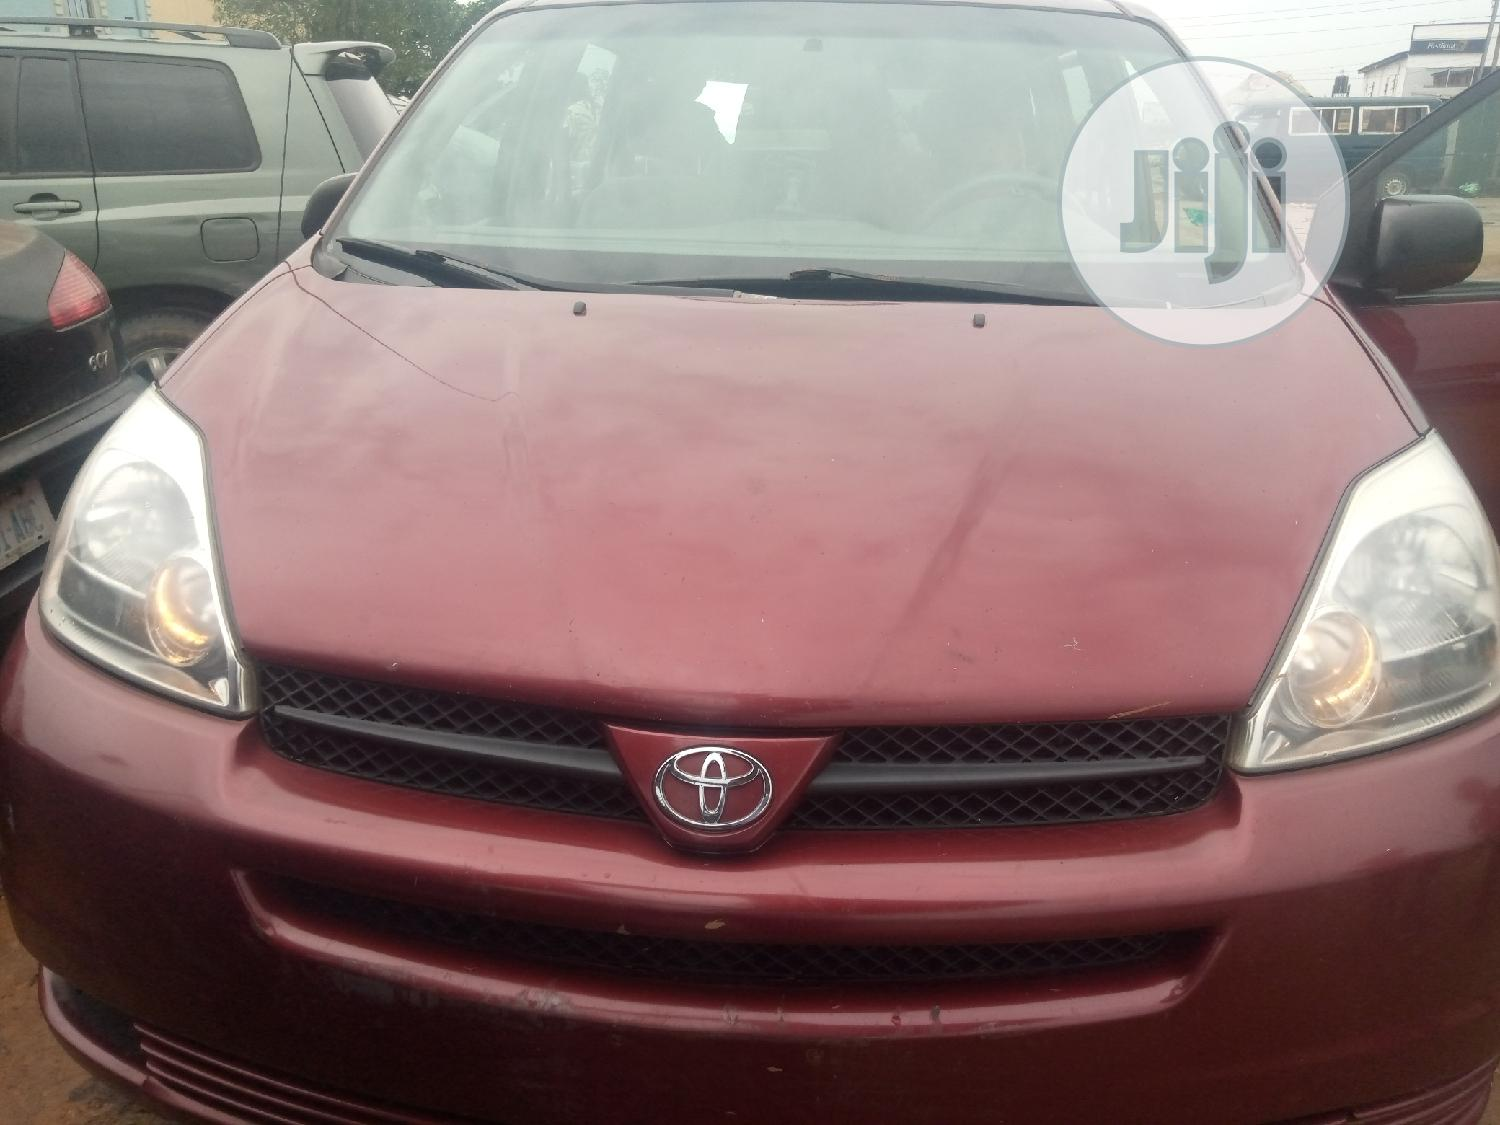 Archive Toyota Sienna 2005 Red In Ikeja Cars Jeslaw Autos Jiji Ng For Sale In Ikeja Buy Cars From Jeslaw Autos On Jiji Ng